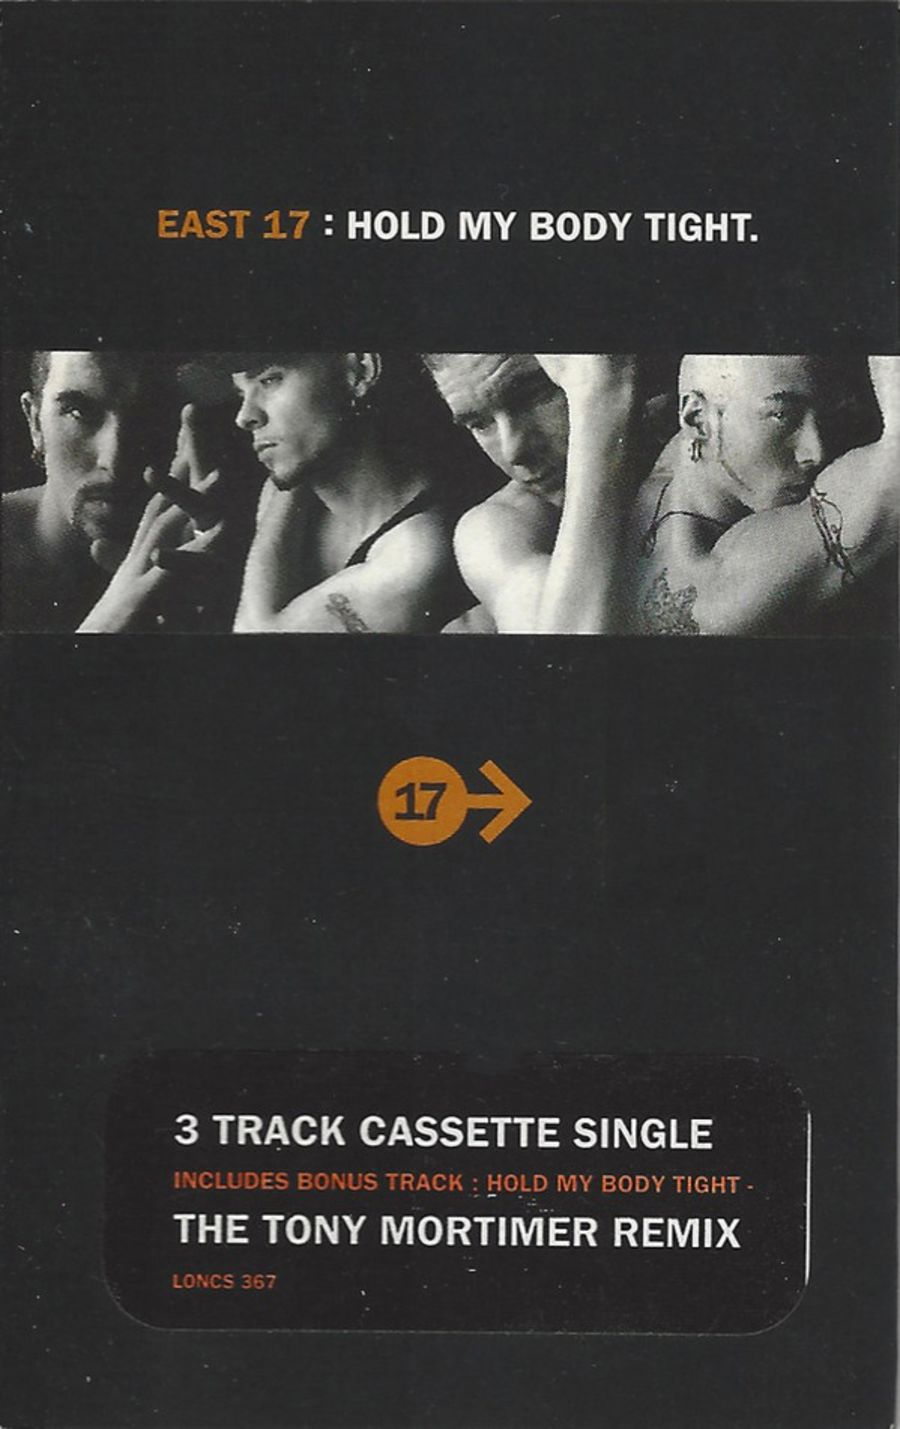 East 17 – Hold My Body Tight cassette single